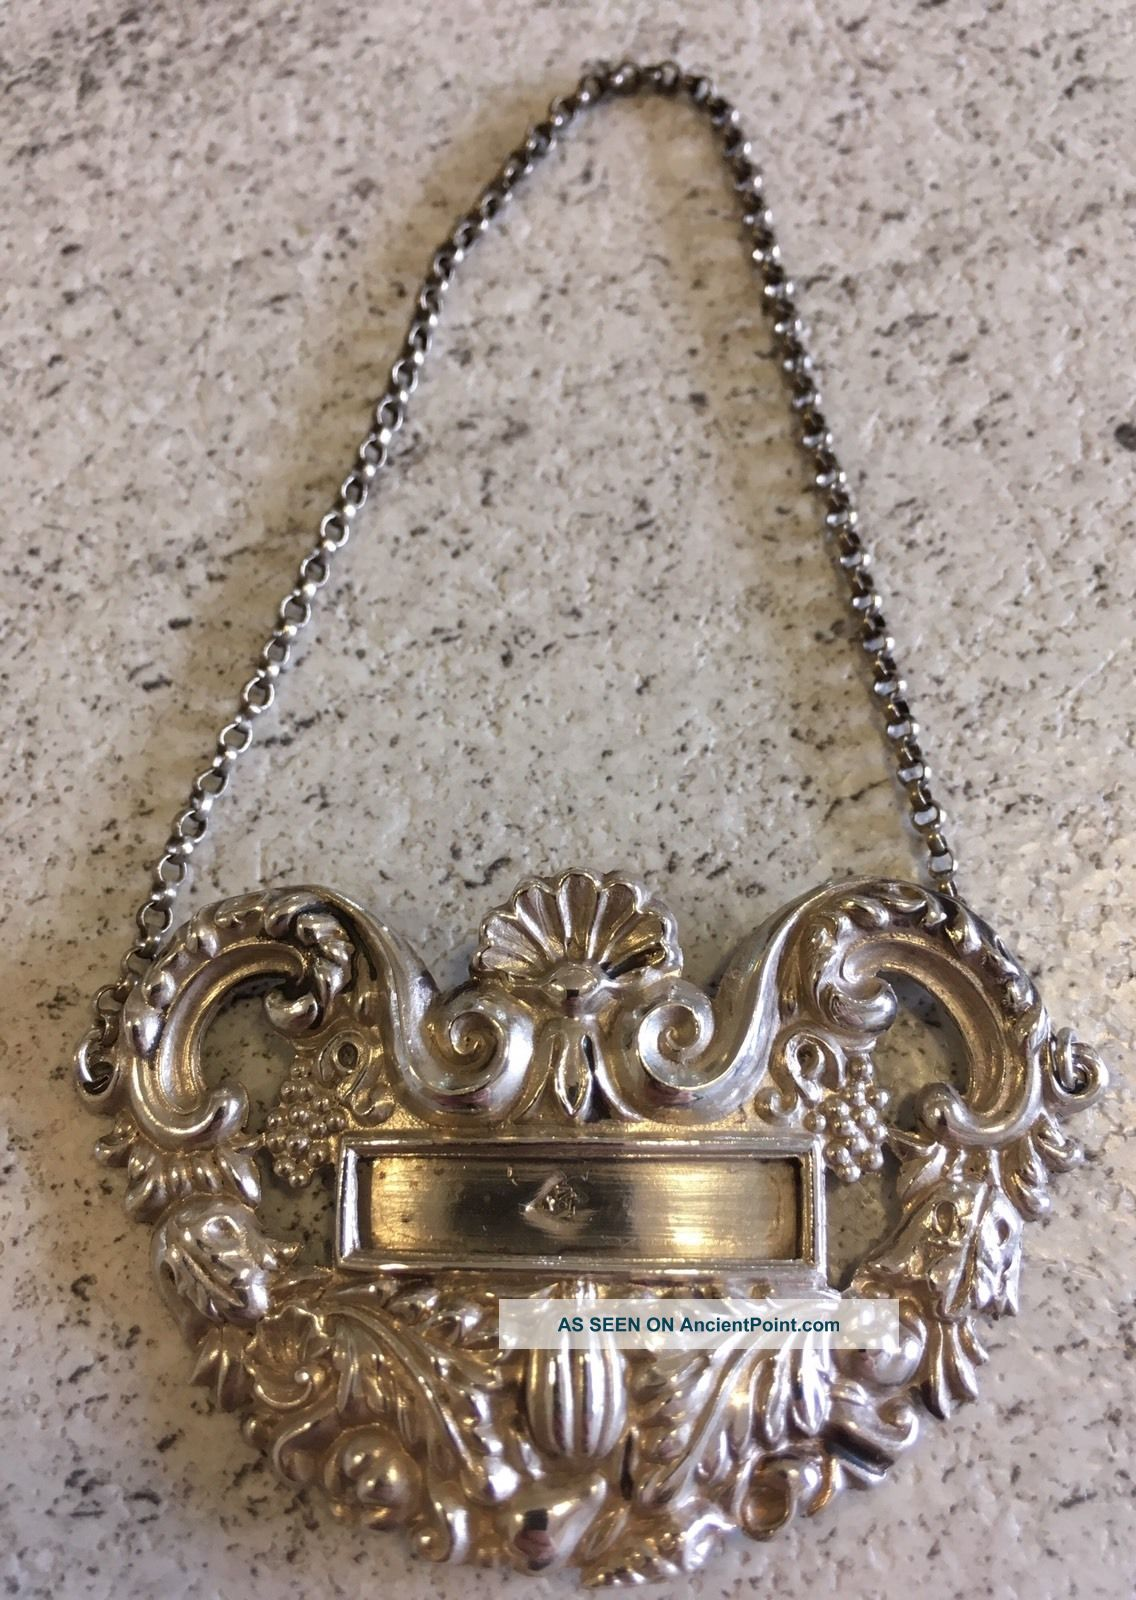 Antique C1820 Wine Decanter Bottle Label French Silver Hallmarked Blank Slot Other Antique Sterling Silver photo